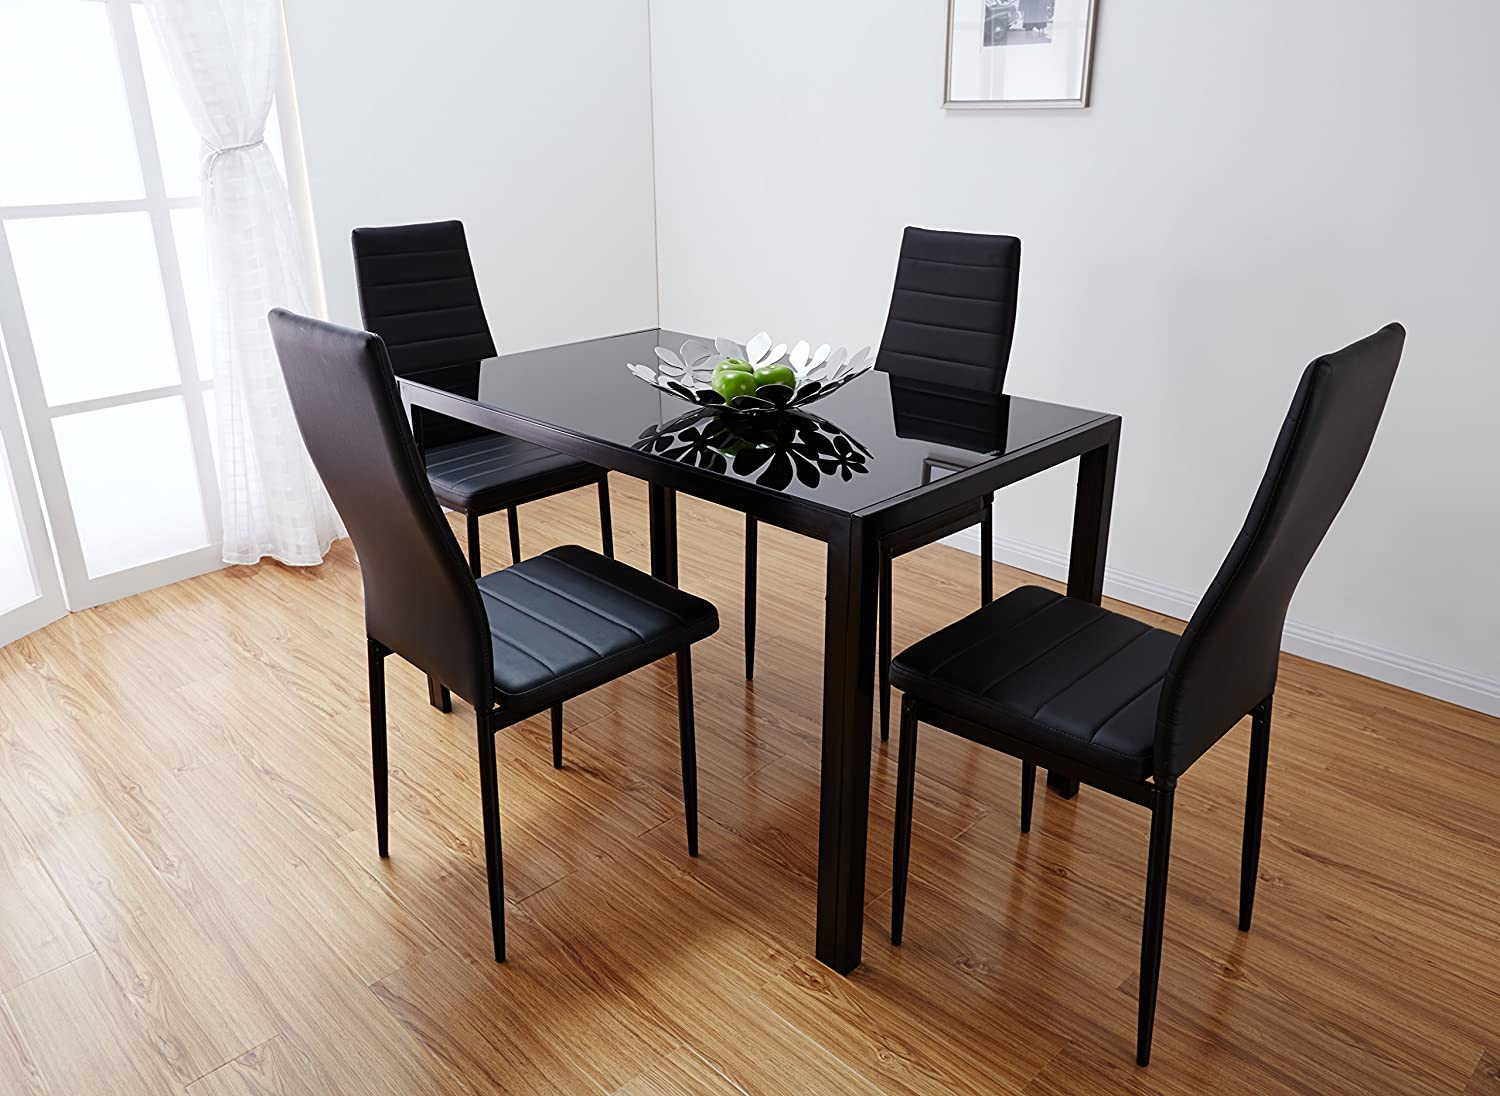 Black Glass Dining Table Set With 4 Faux Leather Chairs Brand New (Black):  Amazon.co.uk: Kitchen U0026 Home